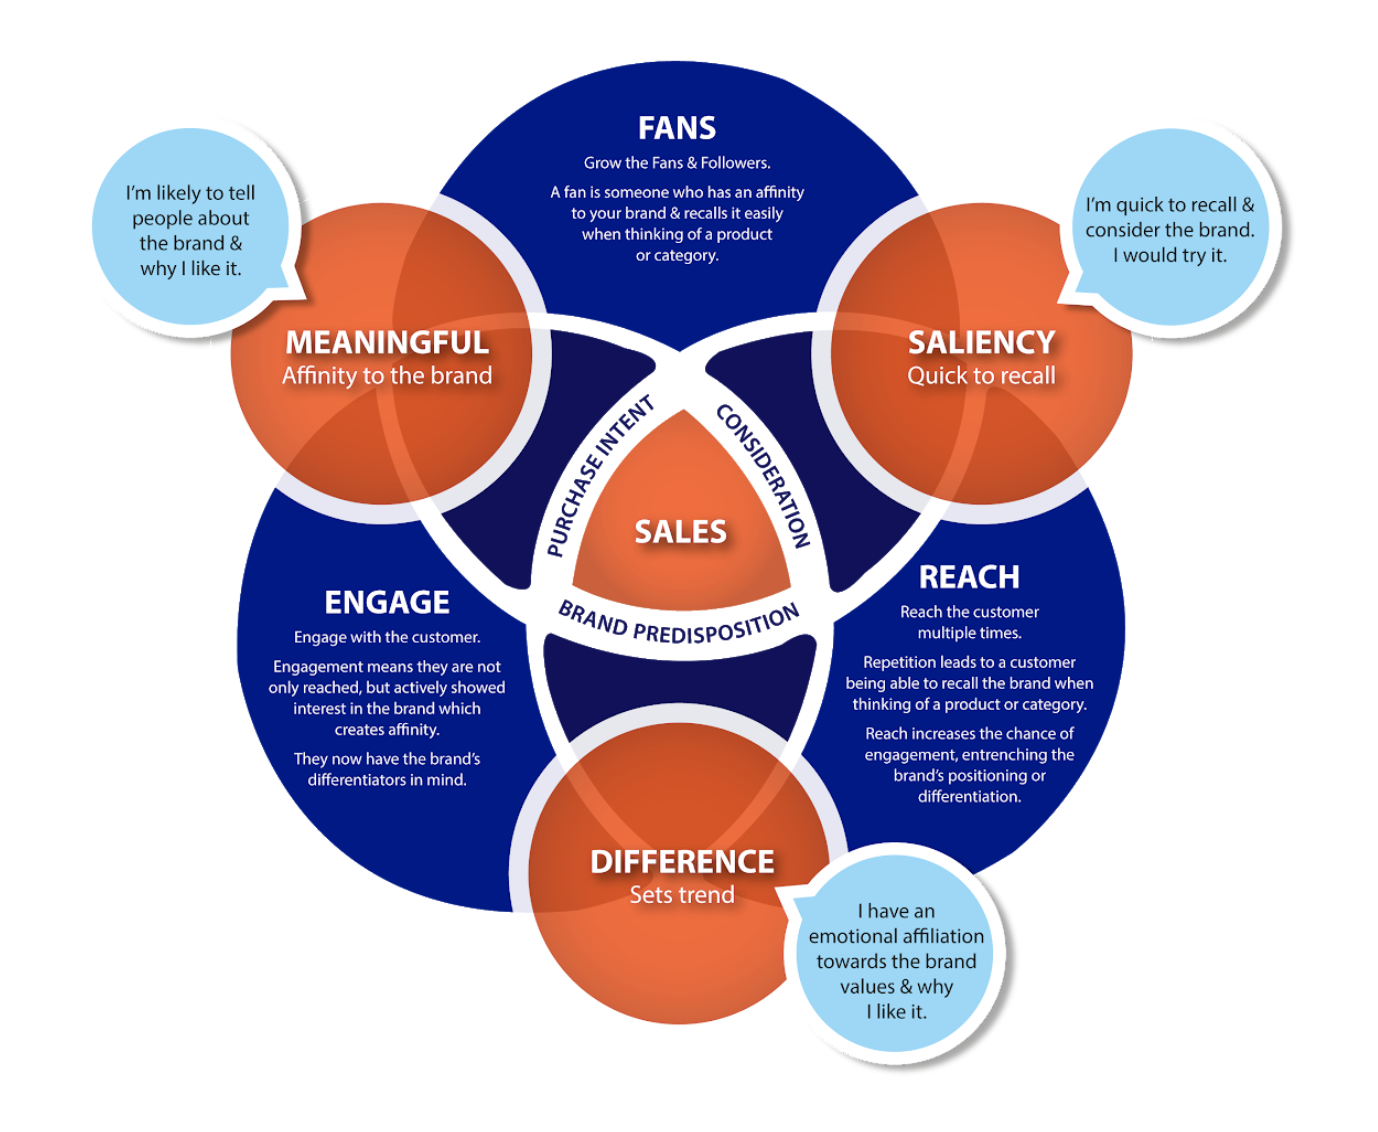 Digital brand equity model to measure effect of Social Marketing to Brand Predisposition